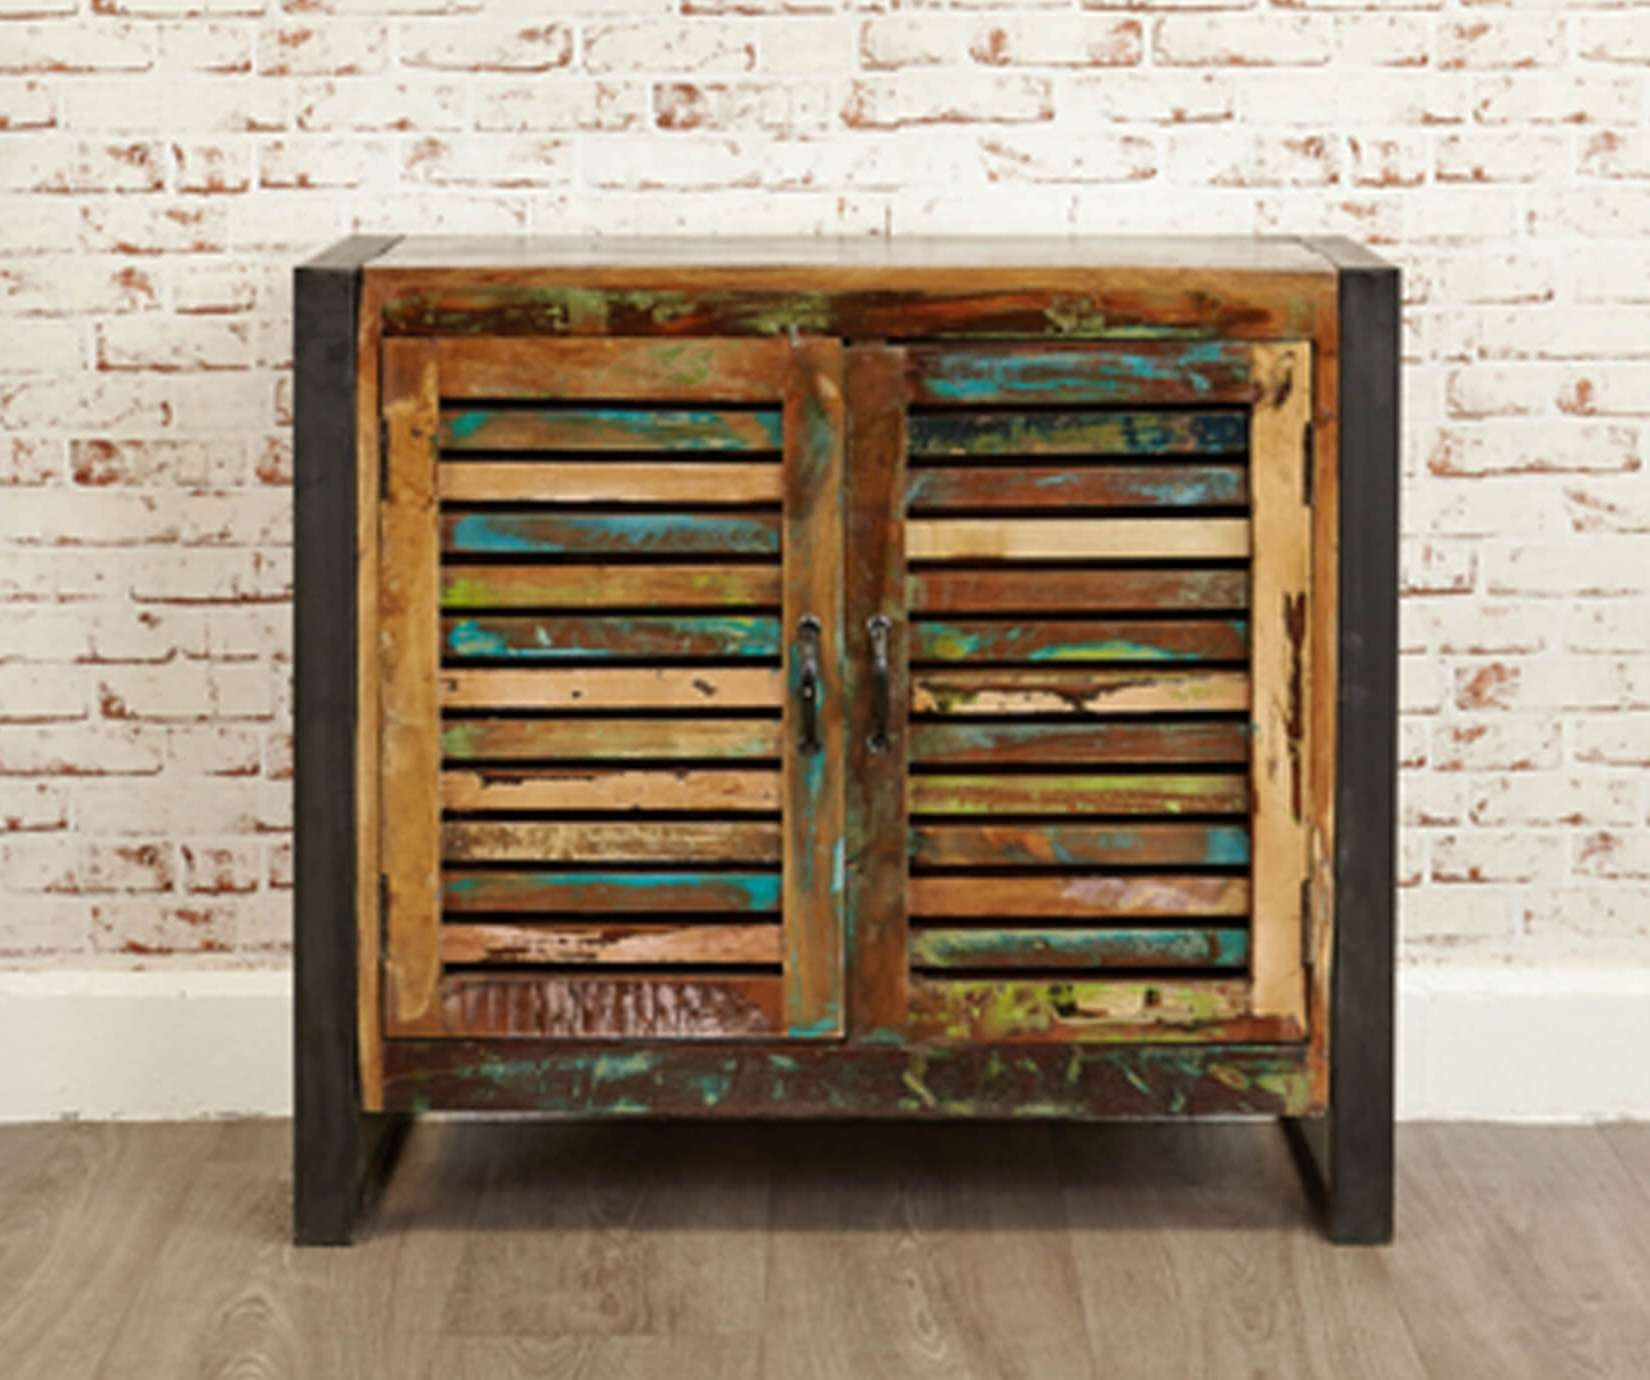 Buy Dark Wood Sideboards From Furniture Direct Uk Intended For Small Dark Wood Sideboards (View 12 of 20)